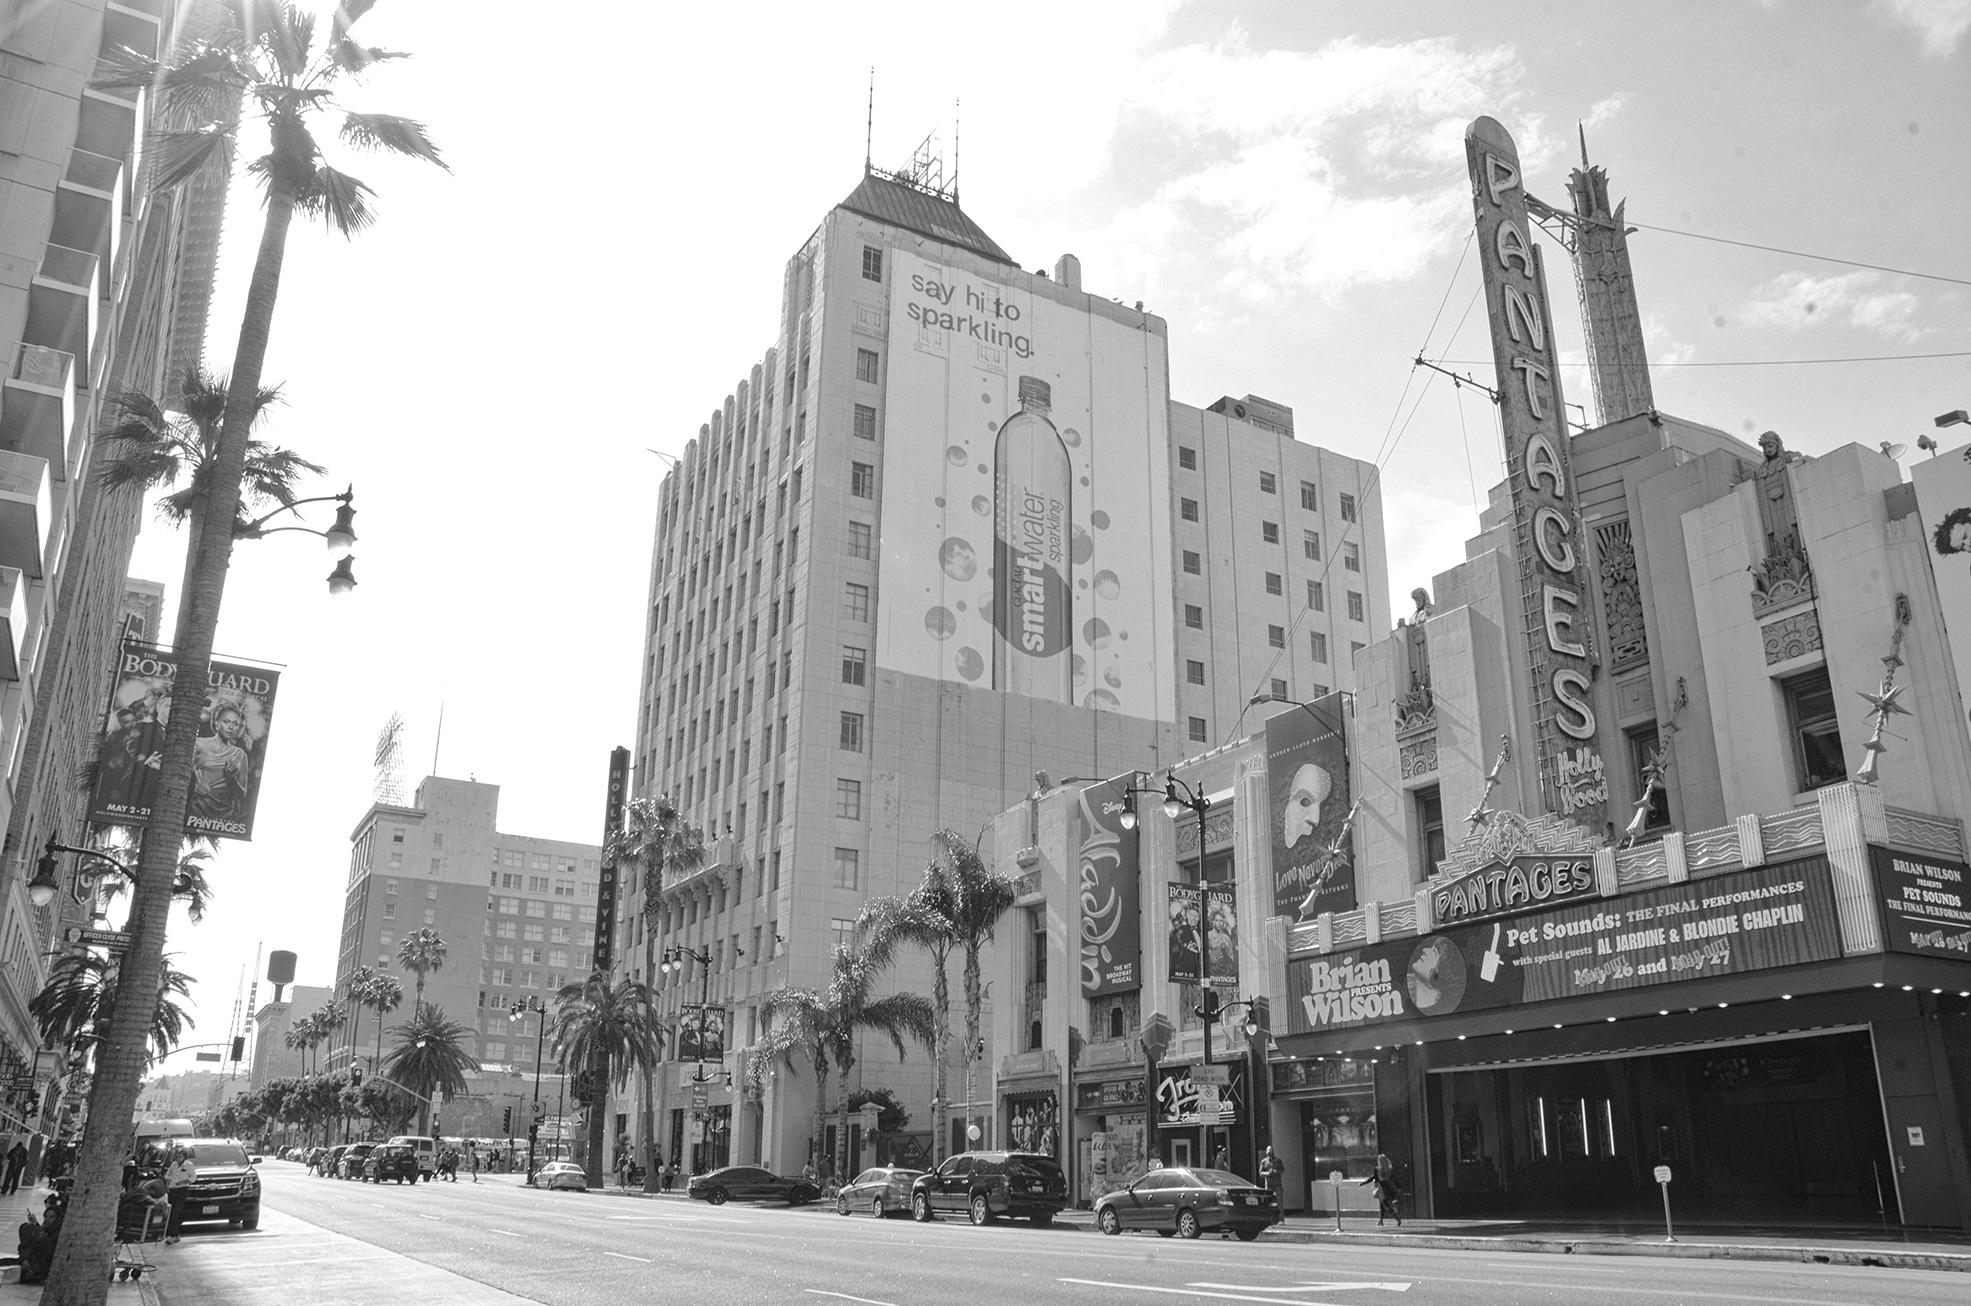 08_Last-seen-at-Pantages-Theatre,-6233-Hollywood-Blvd.,-Hollywood,-LA